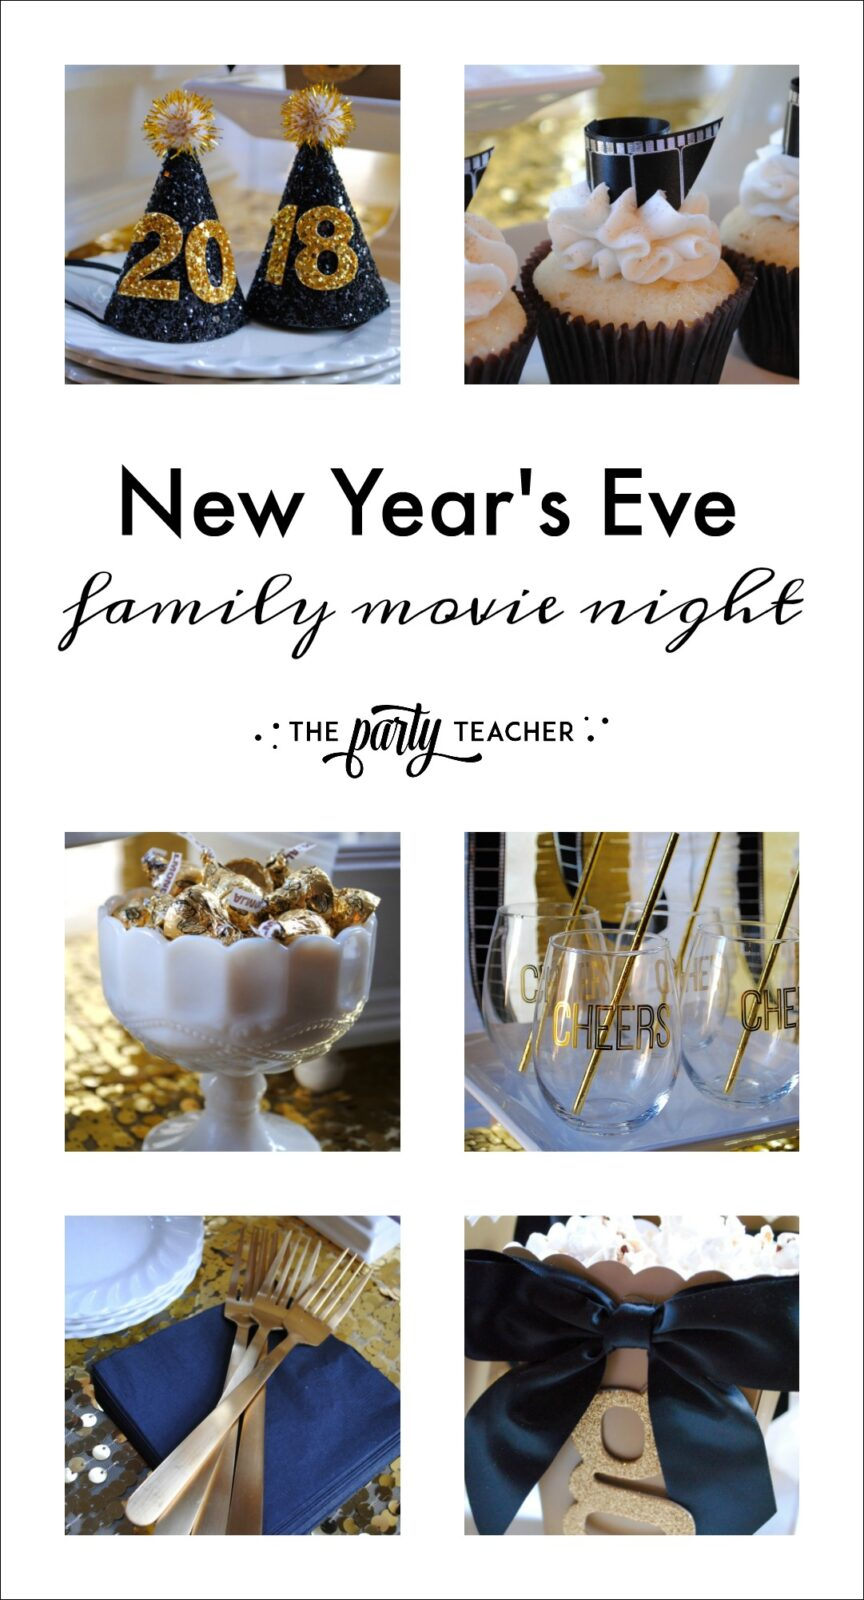 New Year's Eve Family Movie Night by The Party Teacher